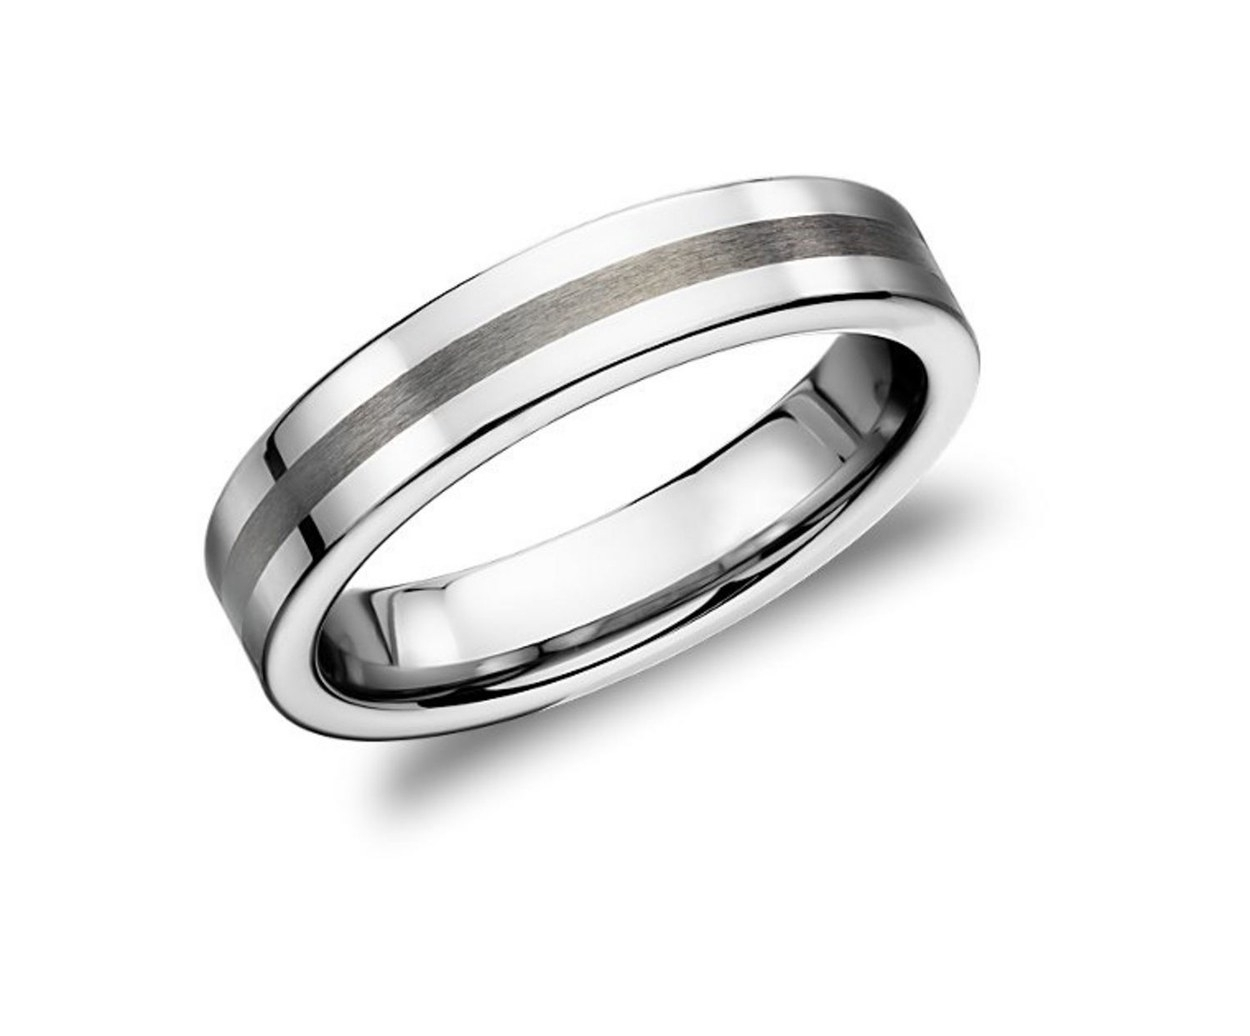 15 Men's Wedding Bands Your Groom Won't Want To Take Off | Glamour In Most Up To Date Guys Wedding Bands (View 3 of 15)